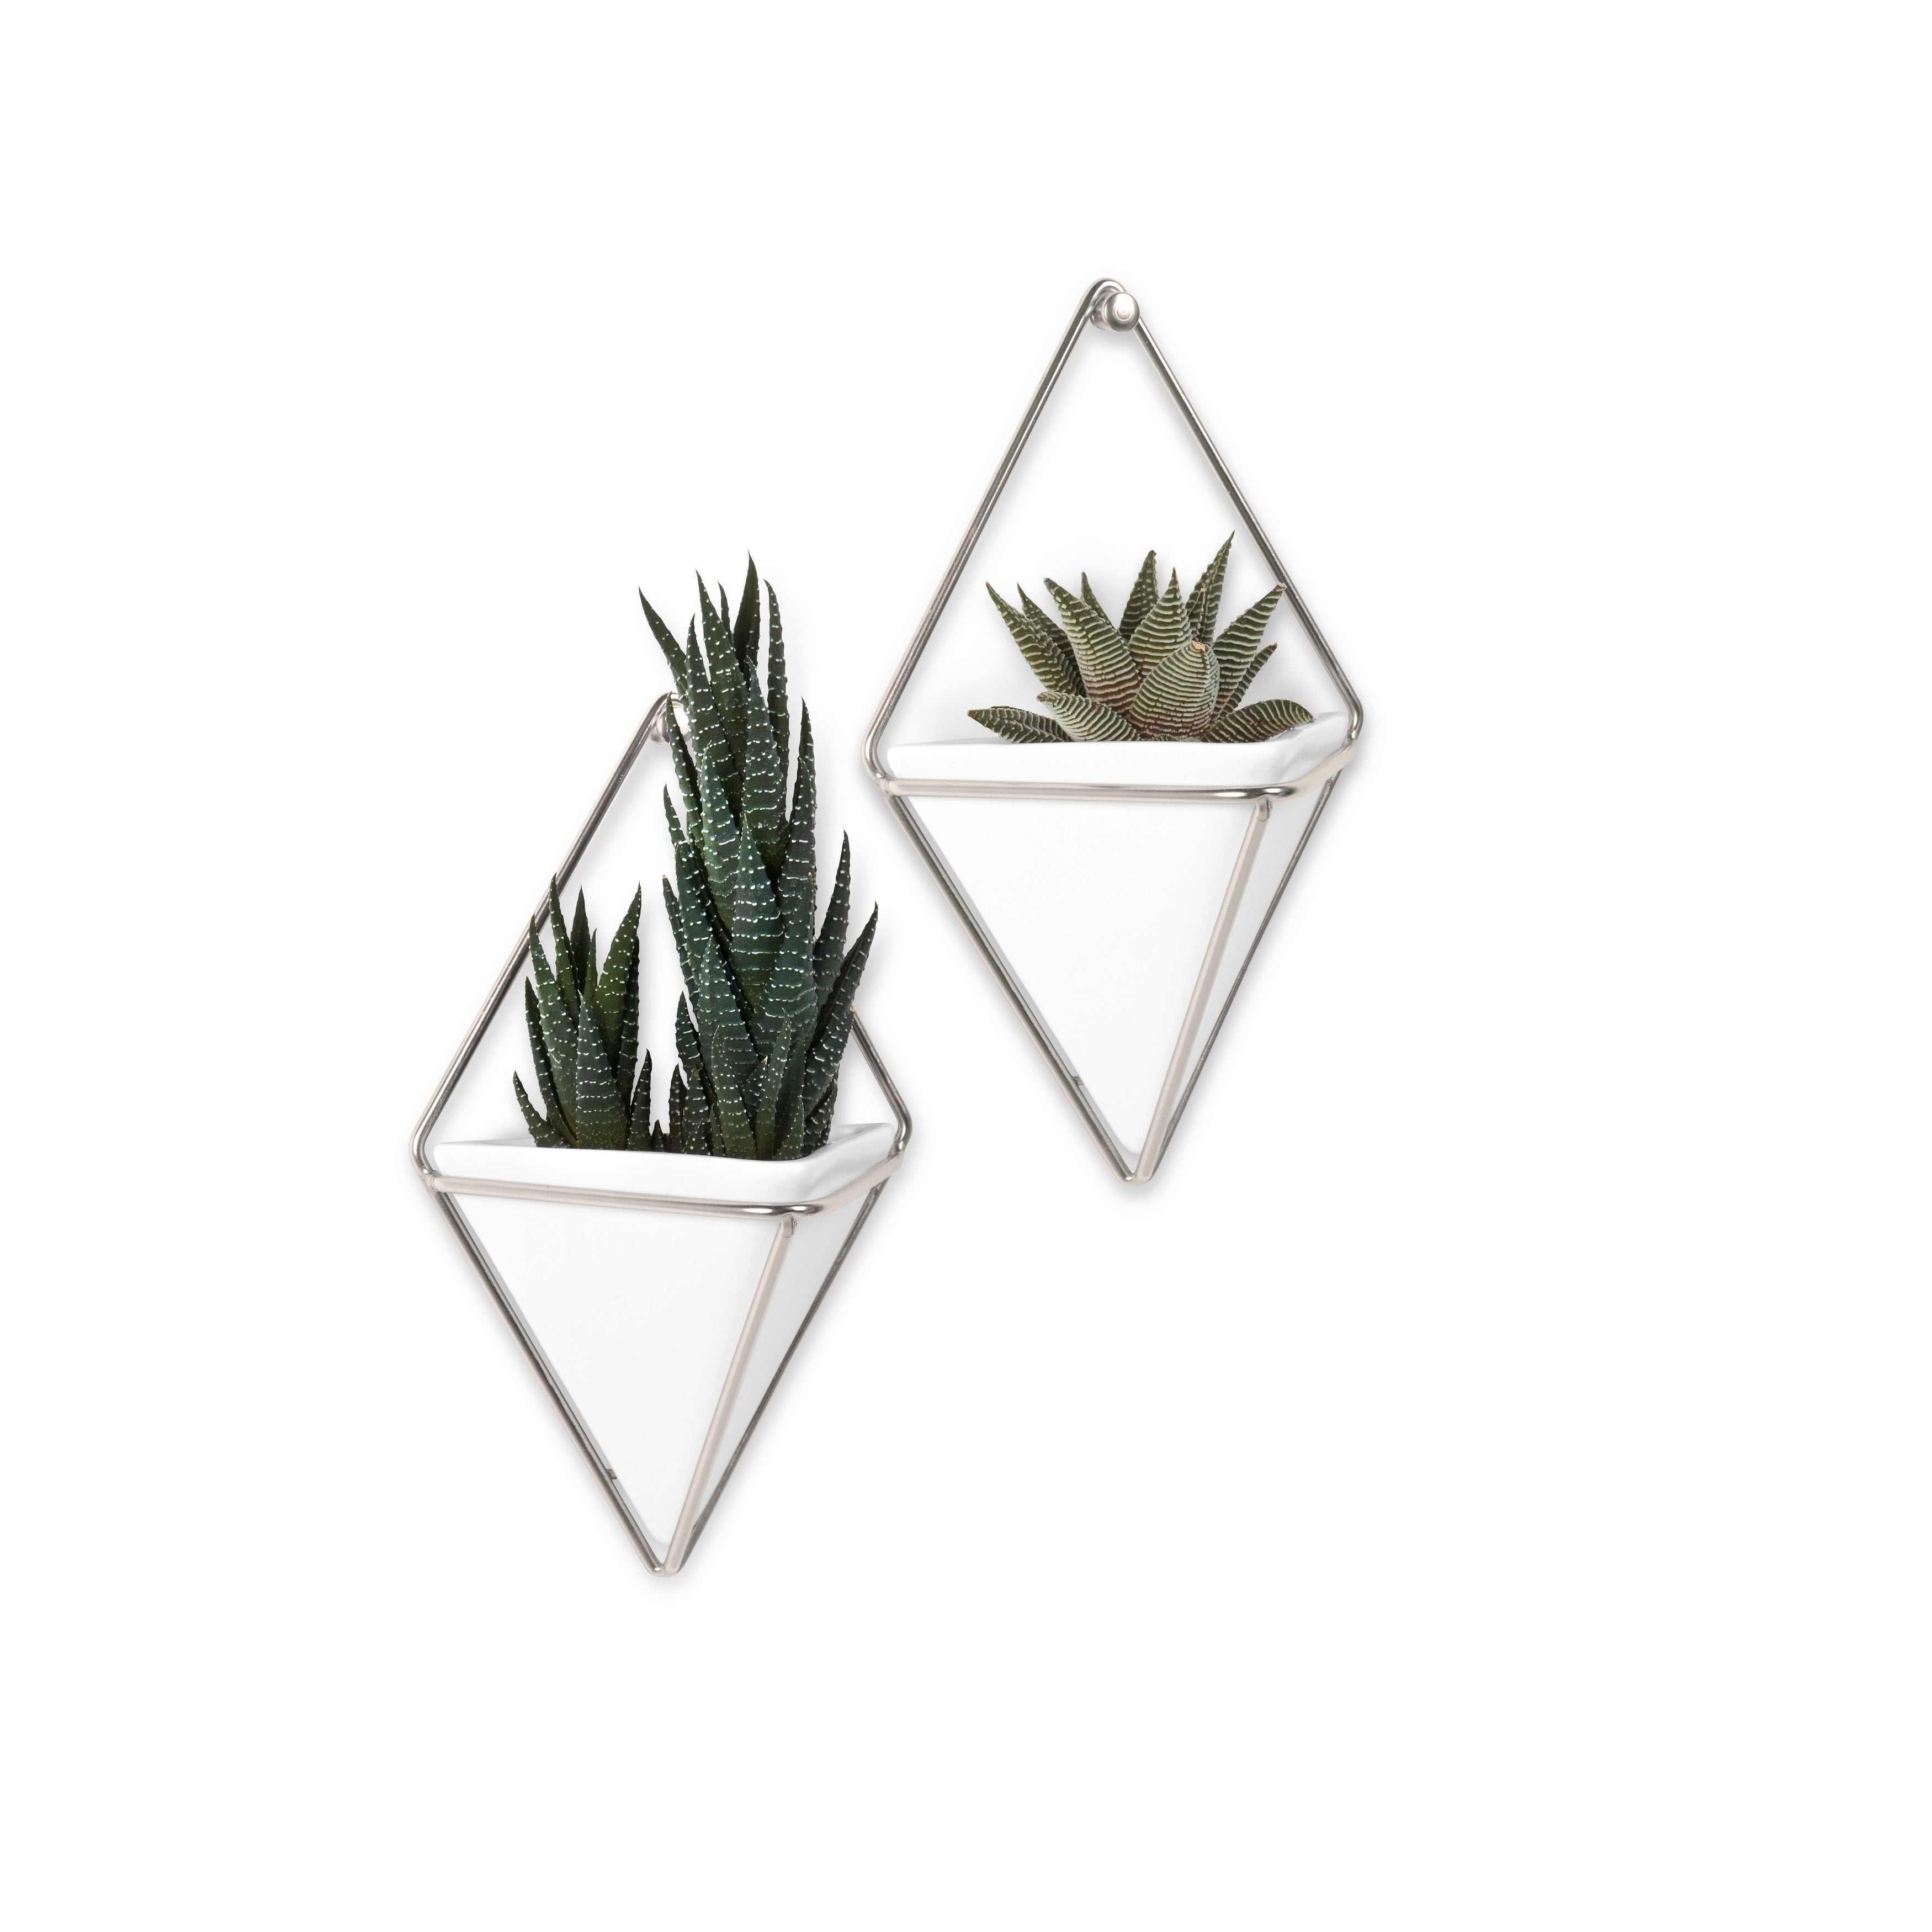 Shop Umbra Trigg Hanging Planter & Wall Decor (set Of 2) – Free Throughout Preferred 2 Piece Trigg Wall Decor Sets (set Of 2) (View 6 of 20)